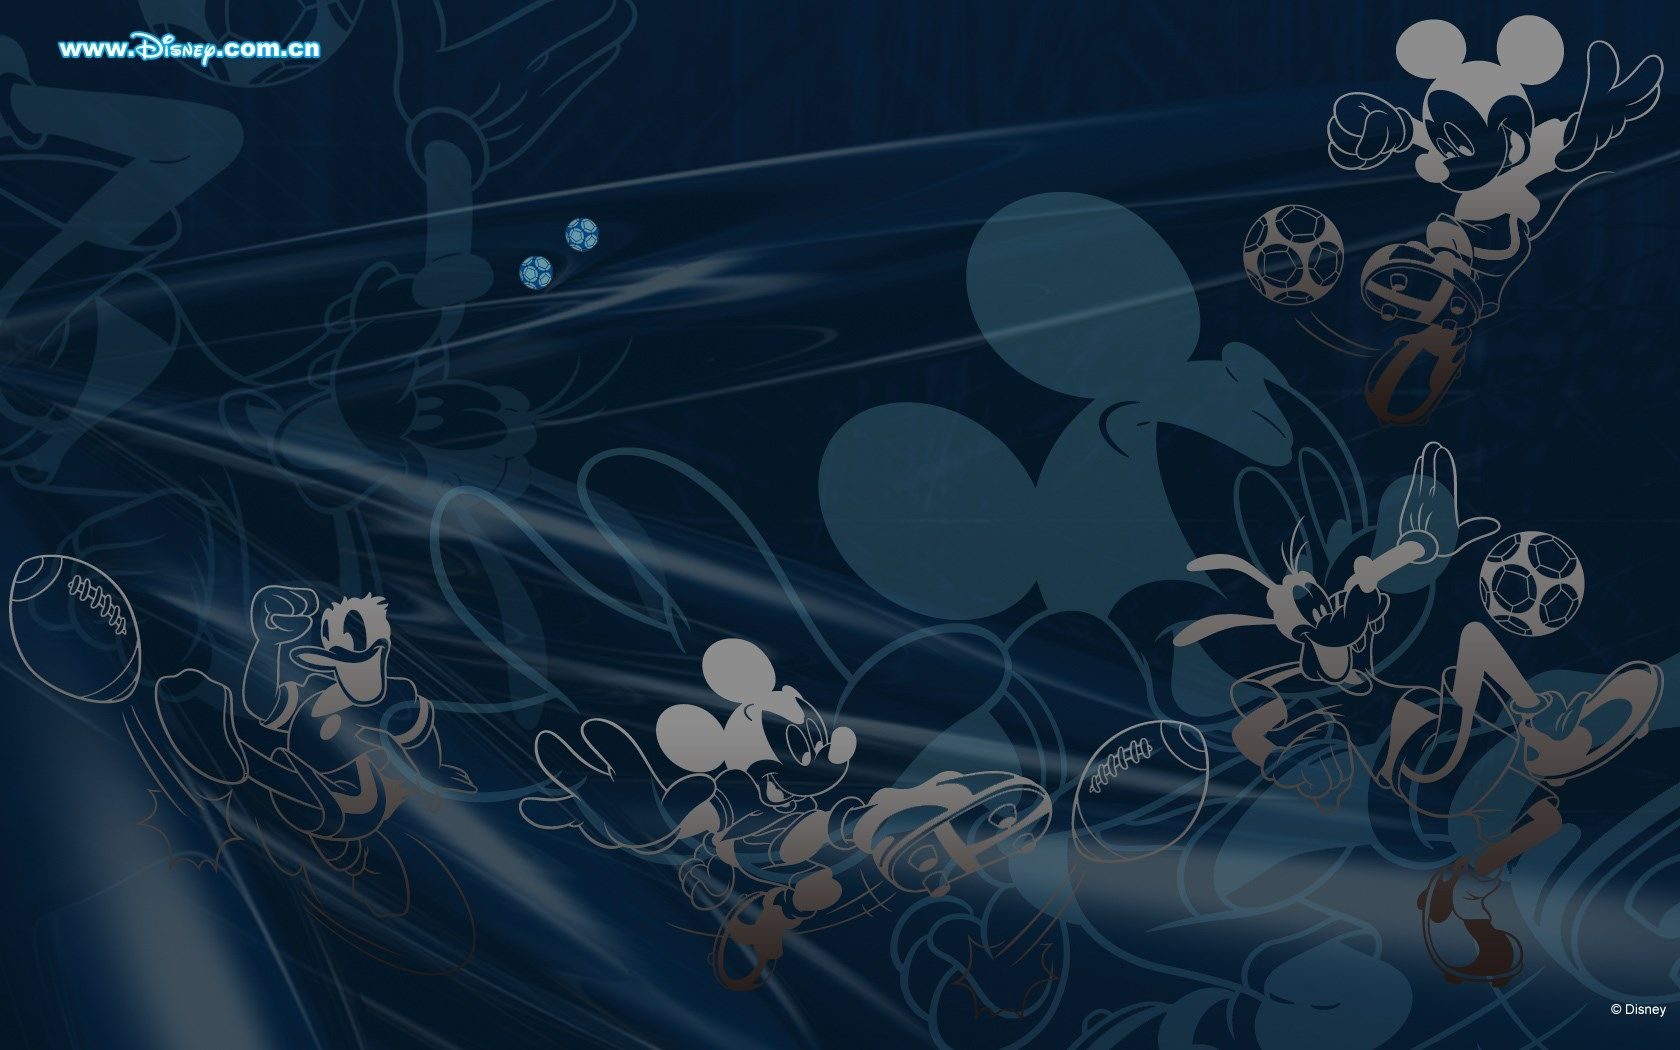 1419159, computer wallpaper for mickey mouse and friends